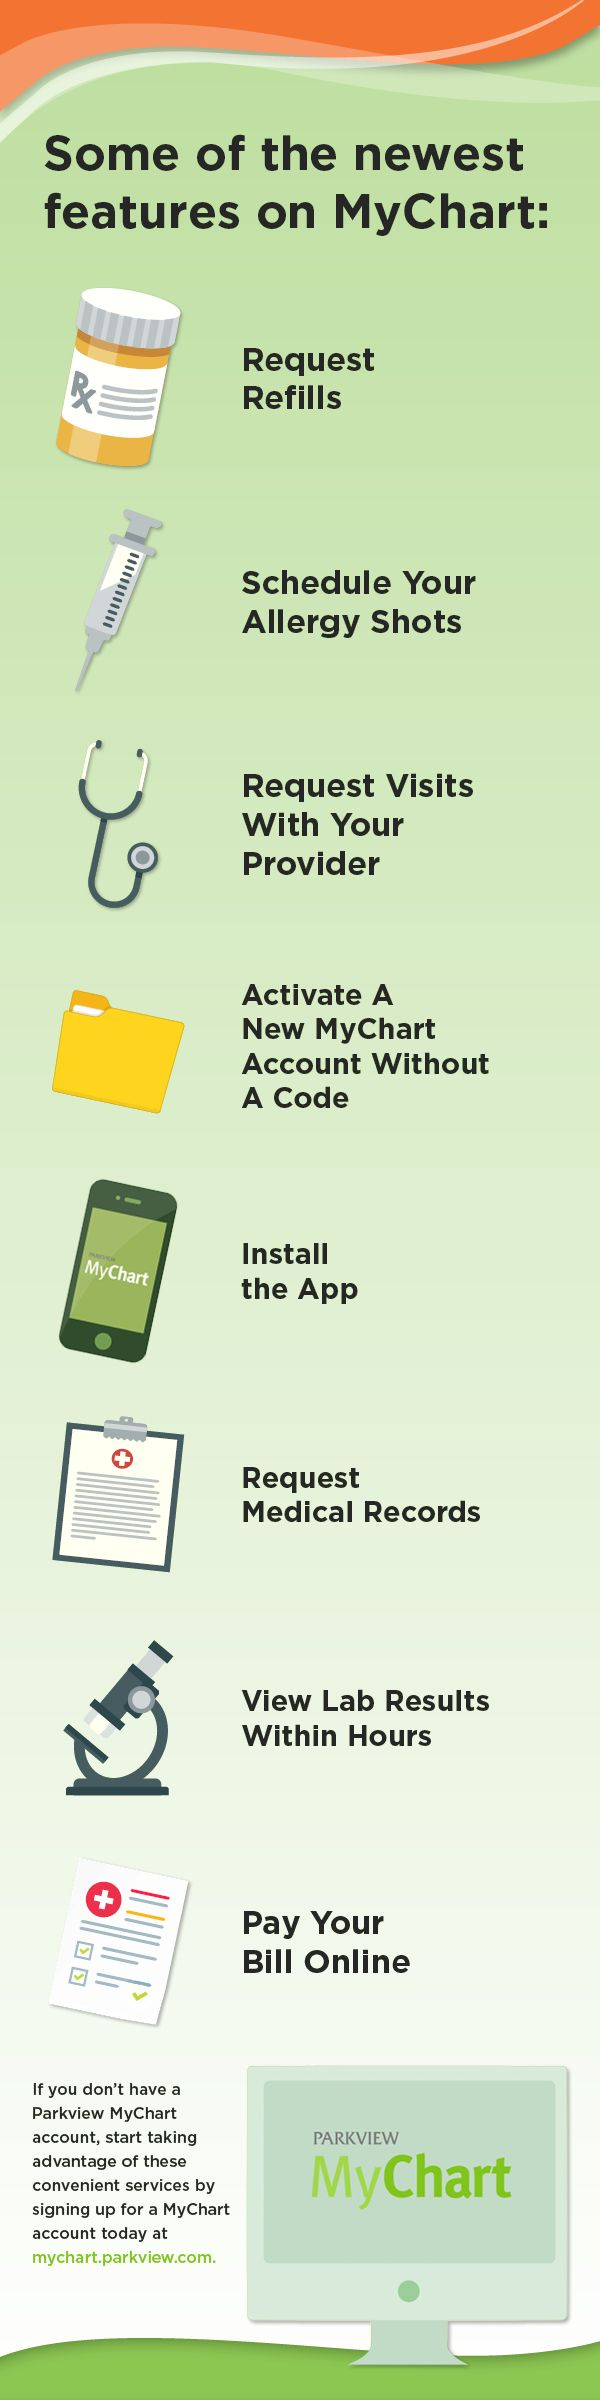 Have you signed up for MyChart through Parkview? You can access your important health information through our app or on your desktop.   #healthcare #apps #medical #infographic #design